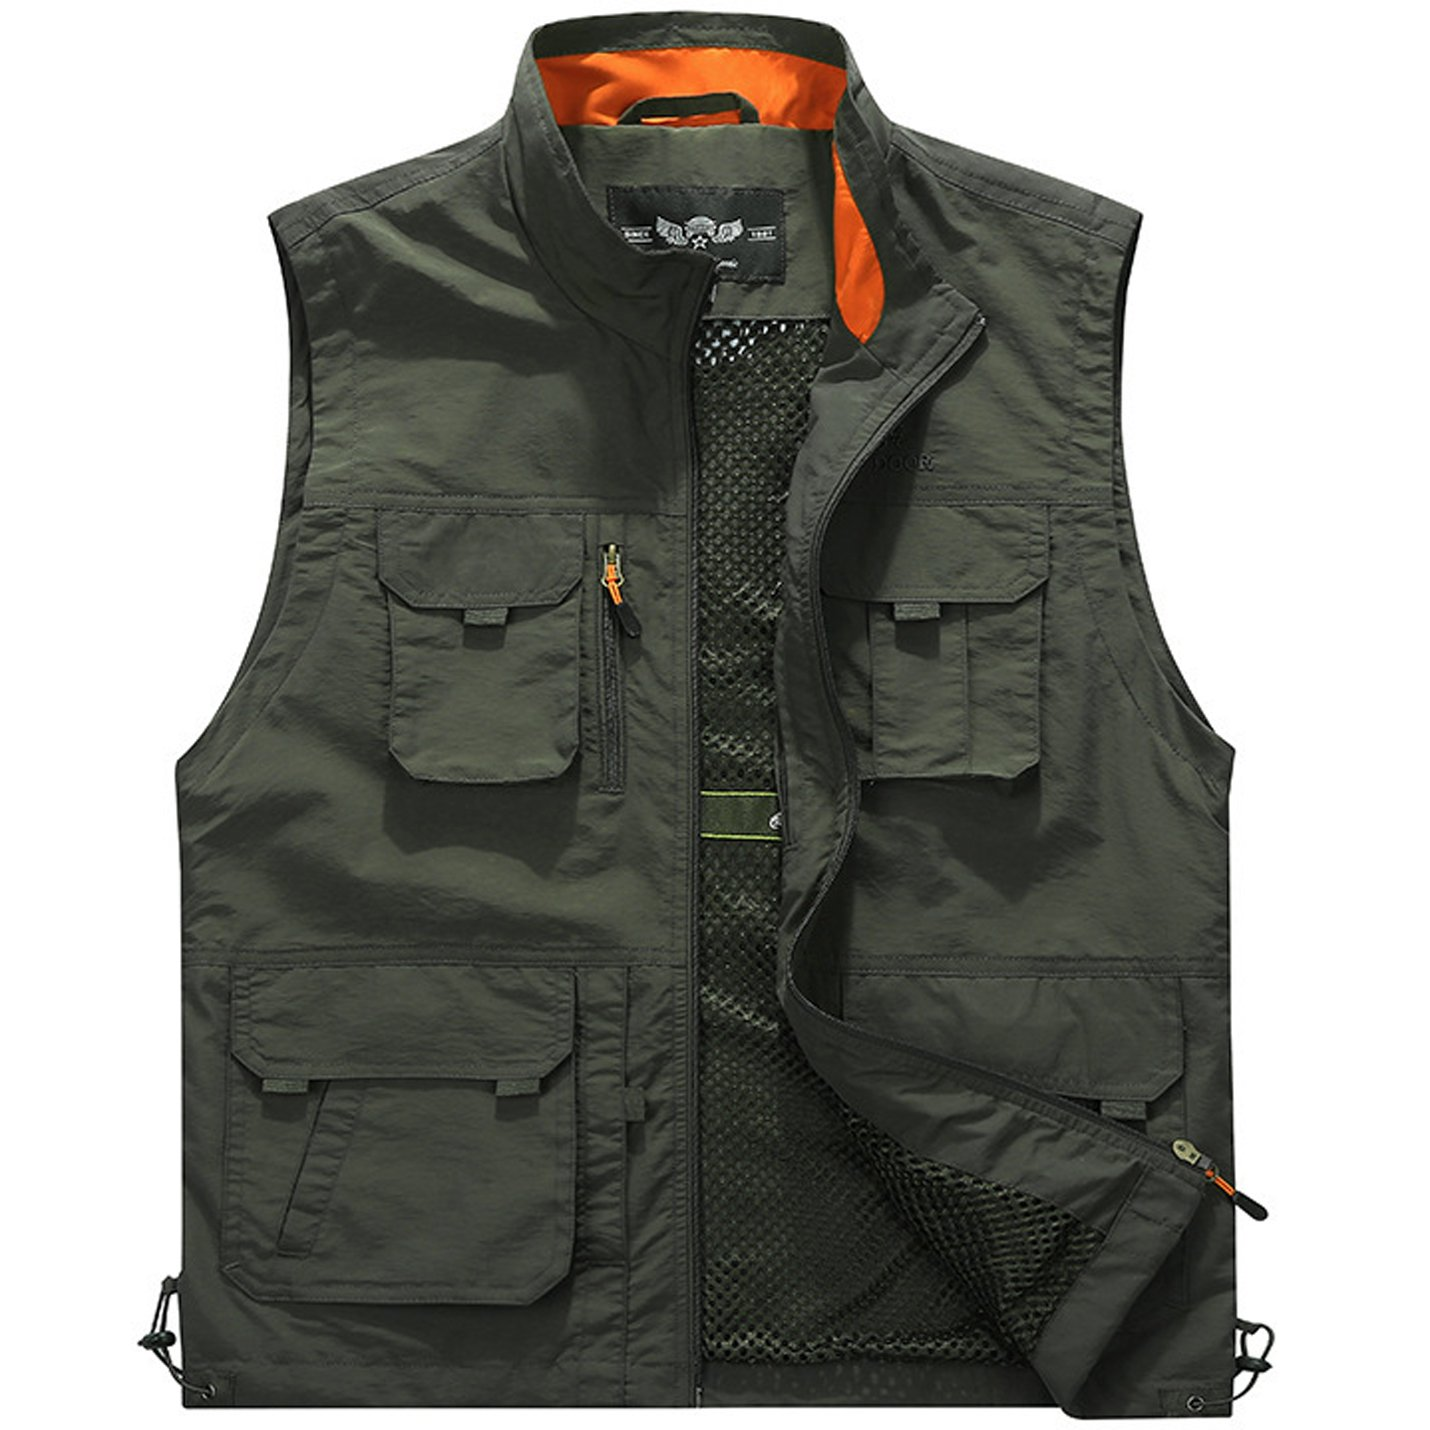 Flygo Men's Utility Outdoor Multi Pockets Fishing Photo Journalist Sports Vest (X-Large, Style 03 Army Green)